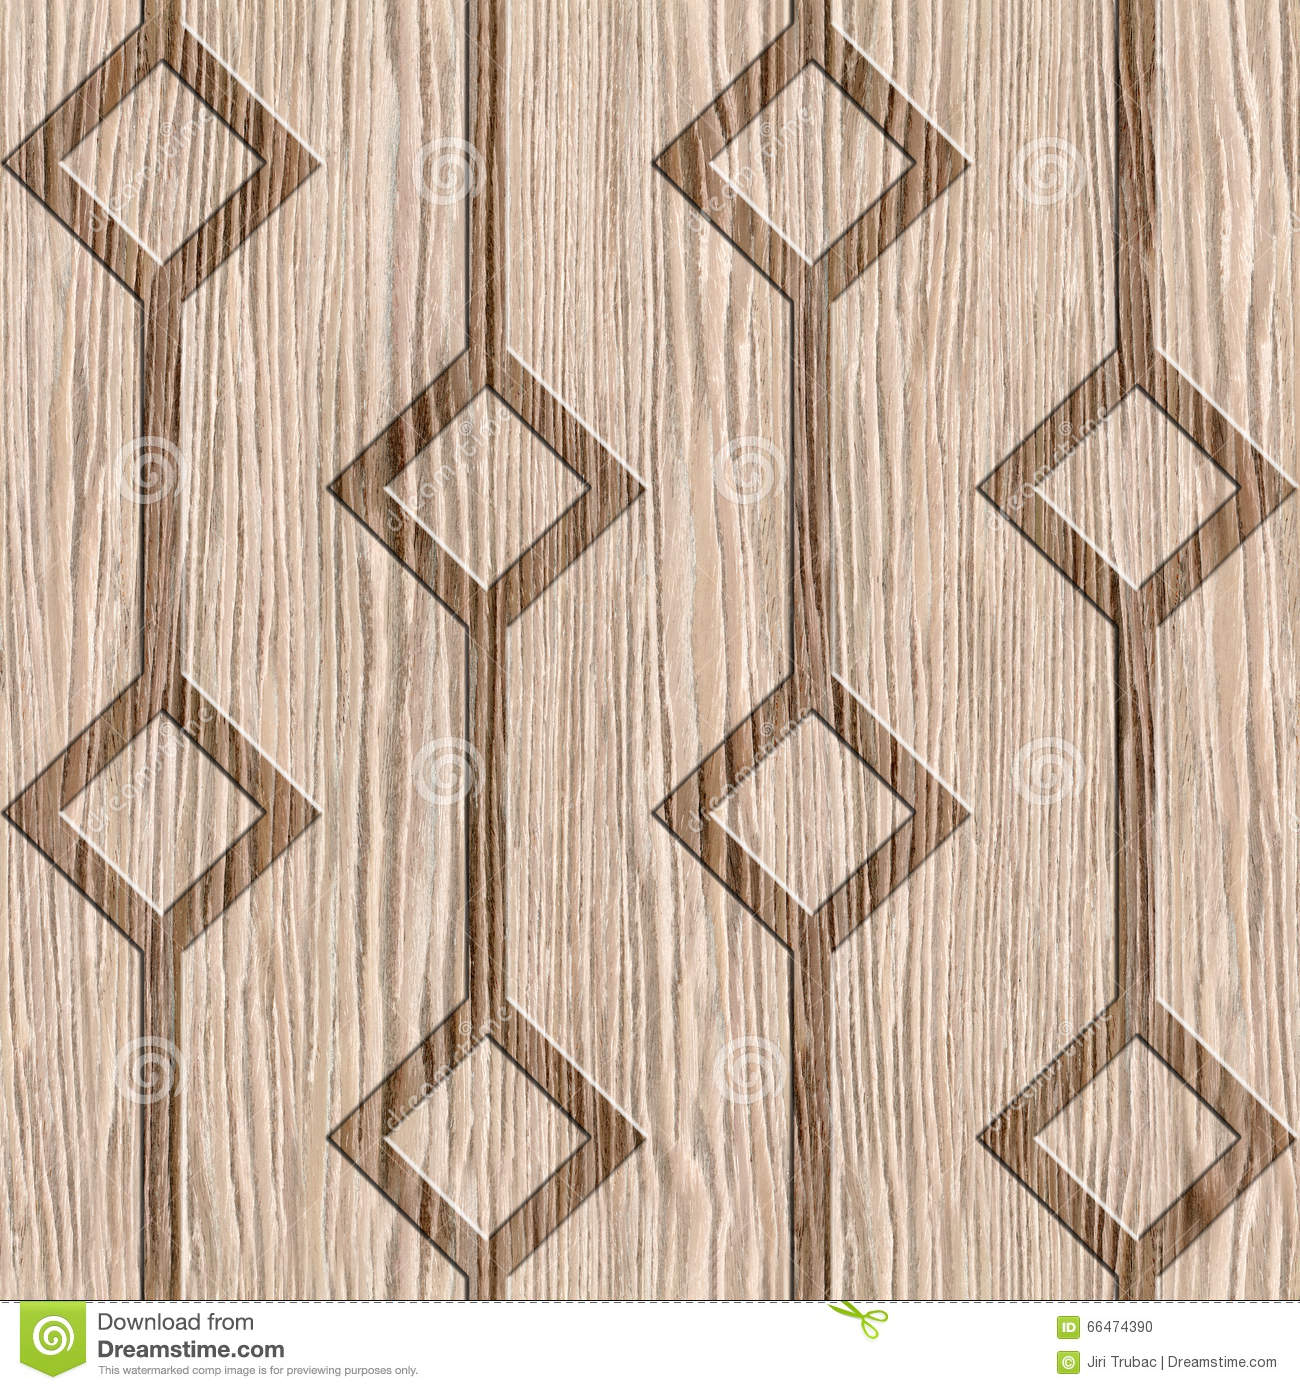 Interior wallpaper texture - Interior Design Wallpaper Abstract Decorative Style